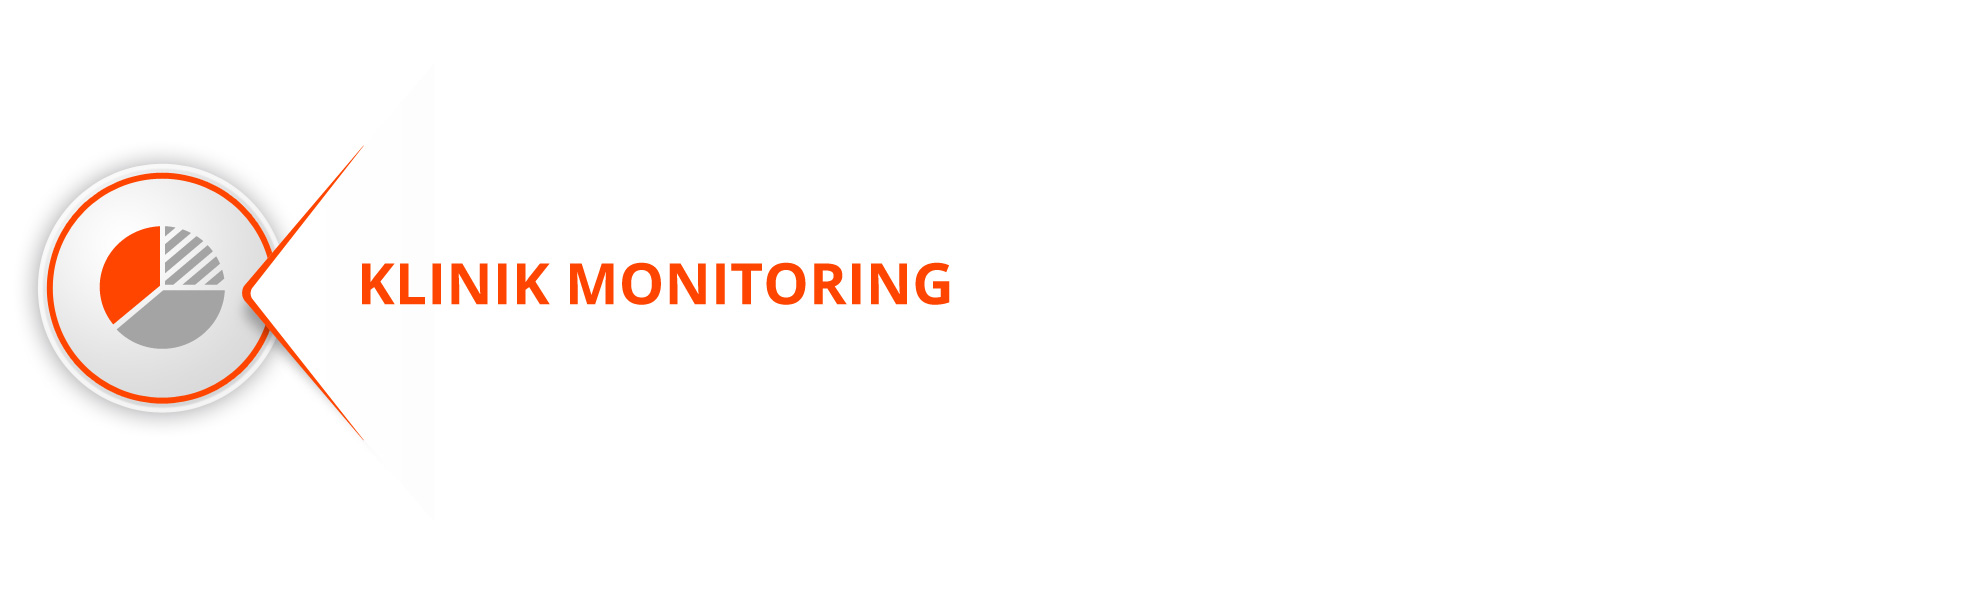 klinik-monitoring-azobit